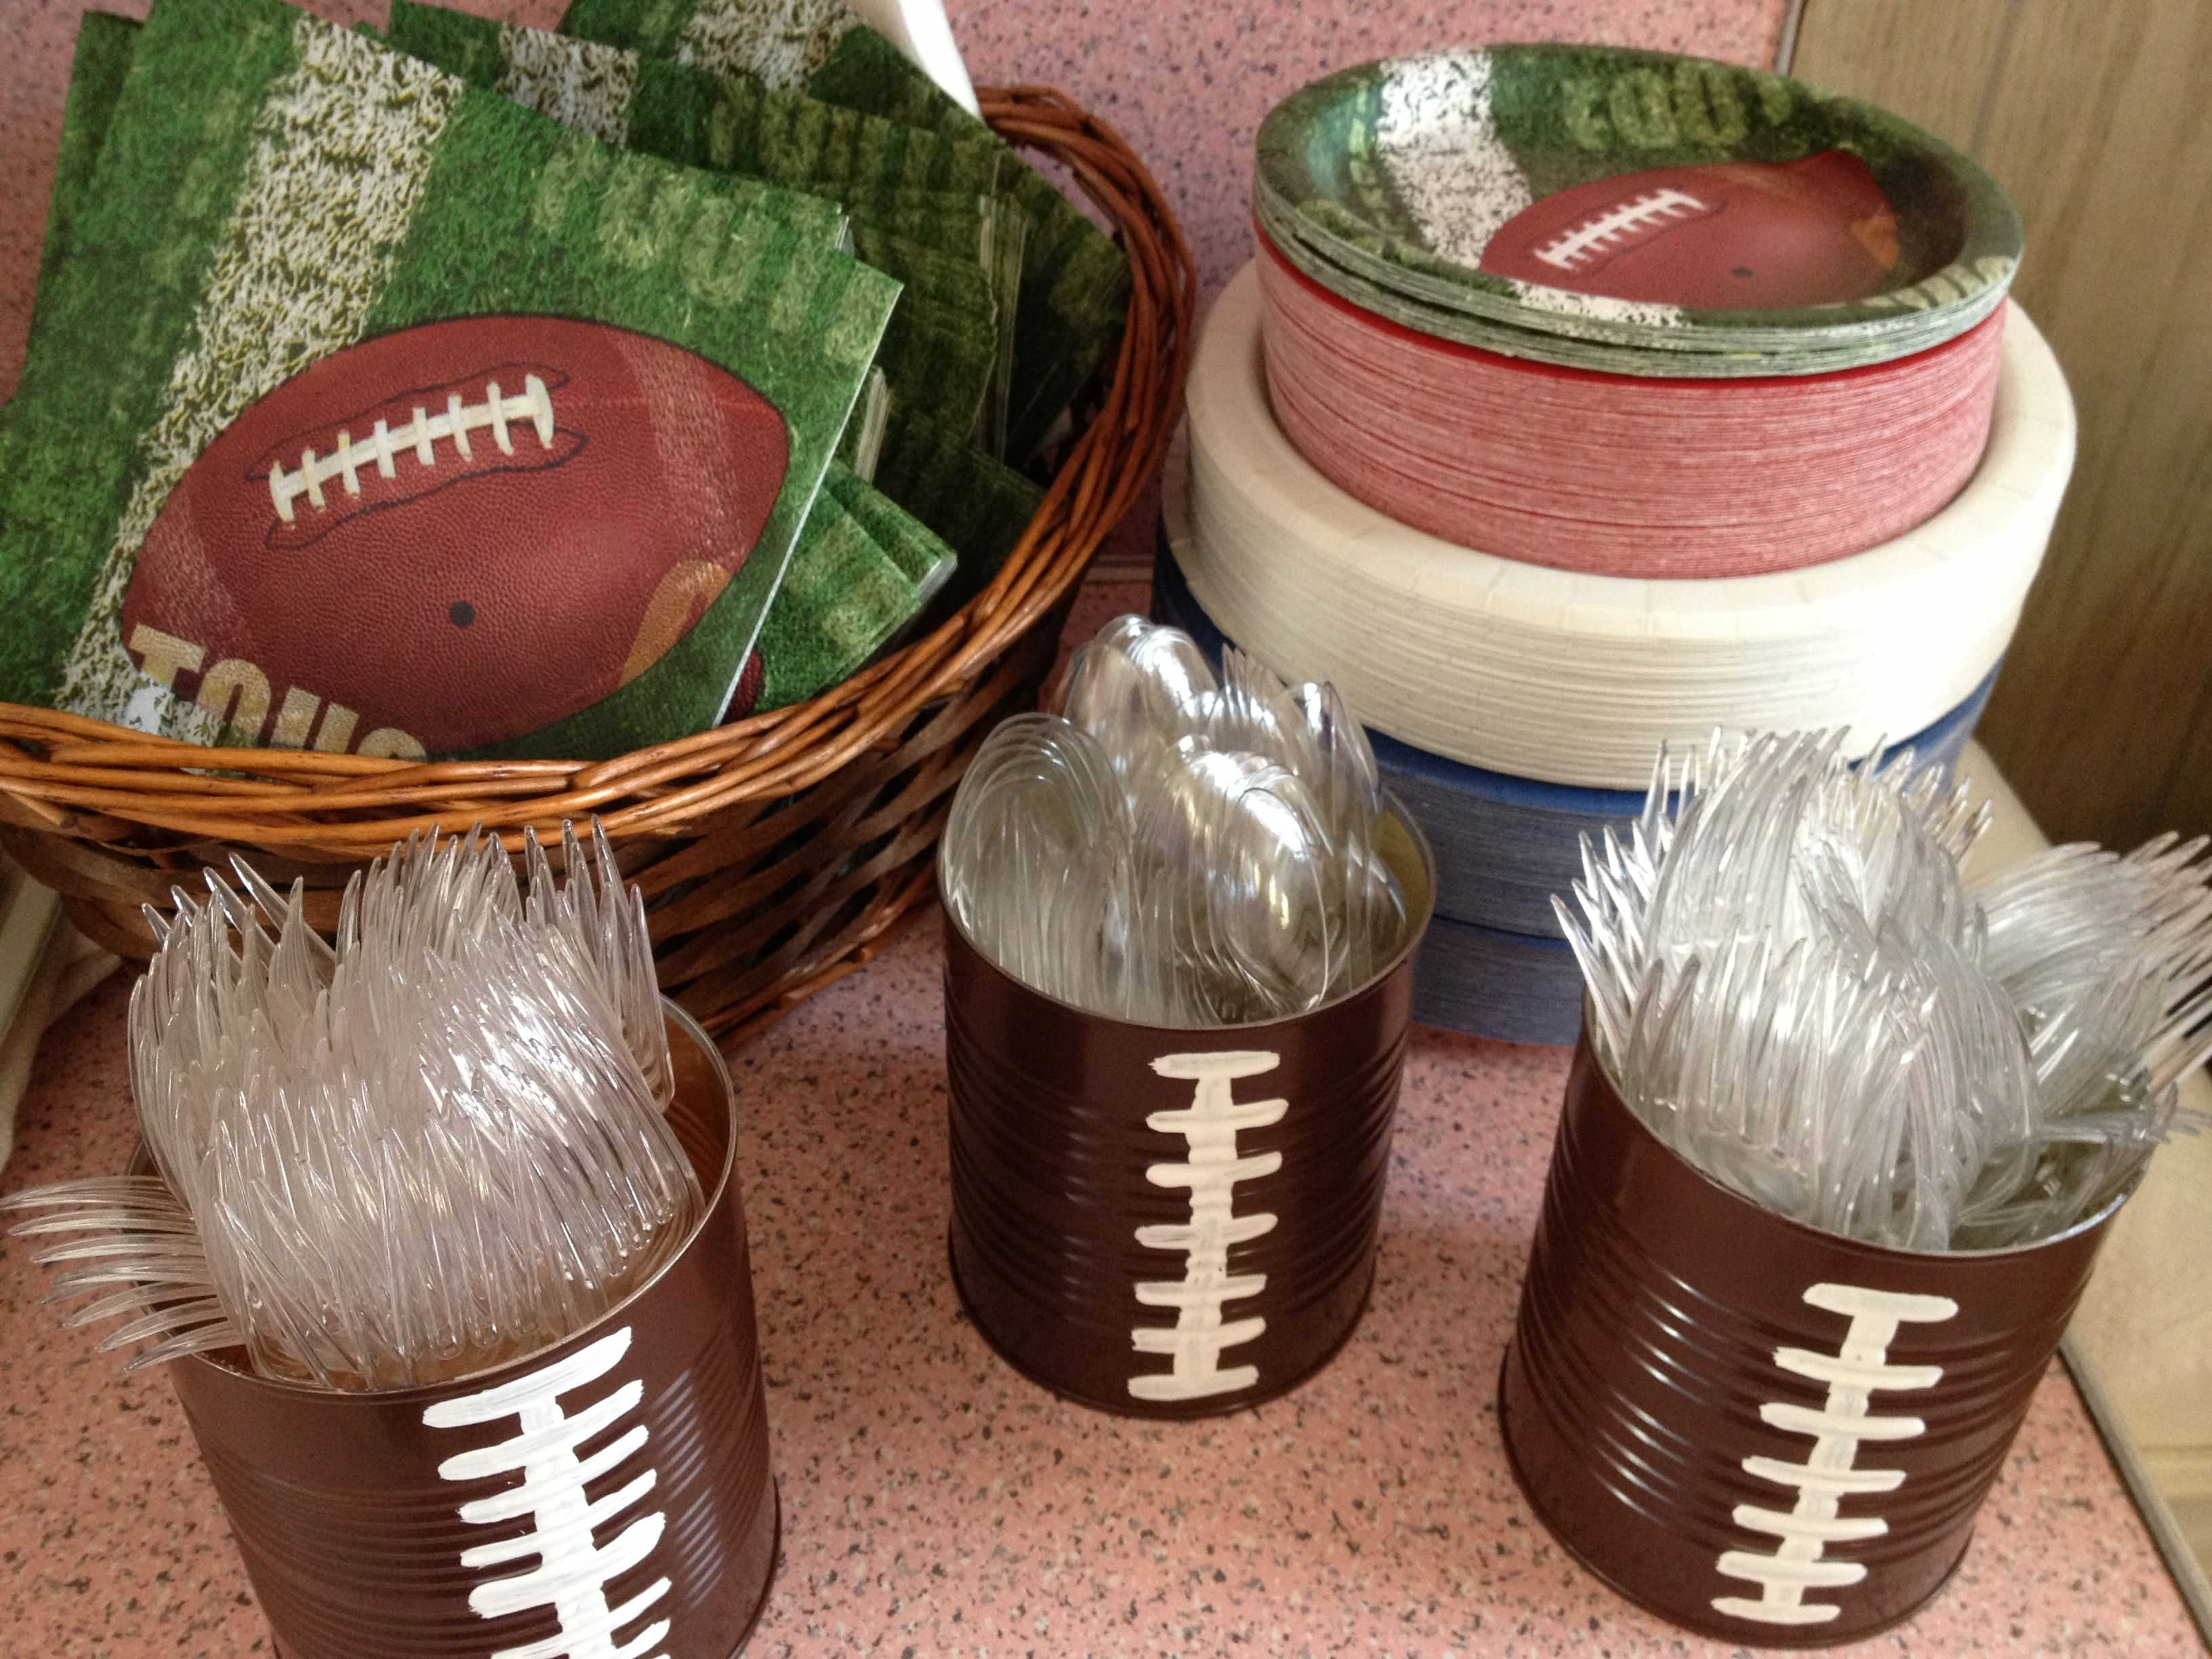 Football fun for an organized Superbowl party.